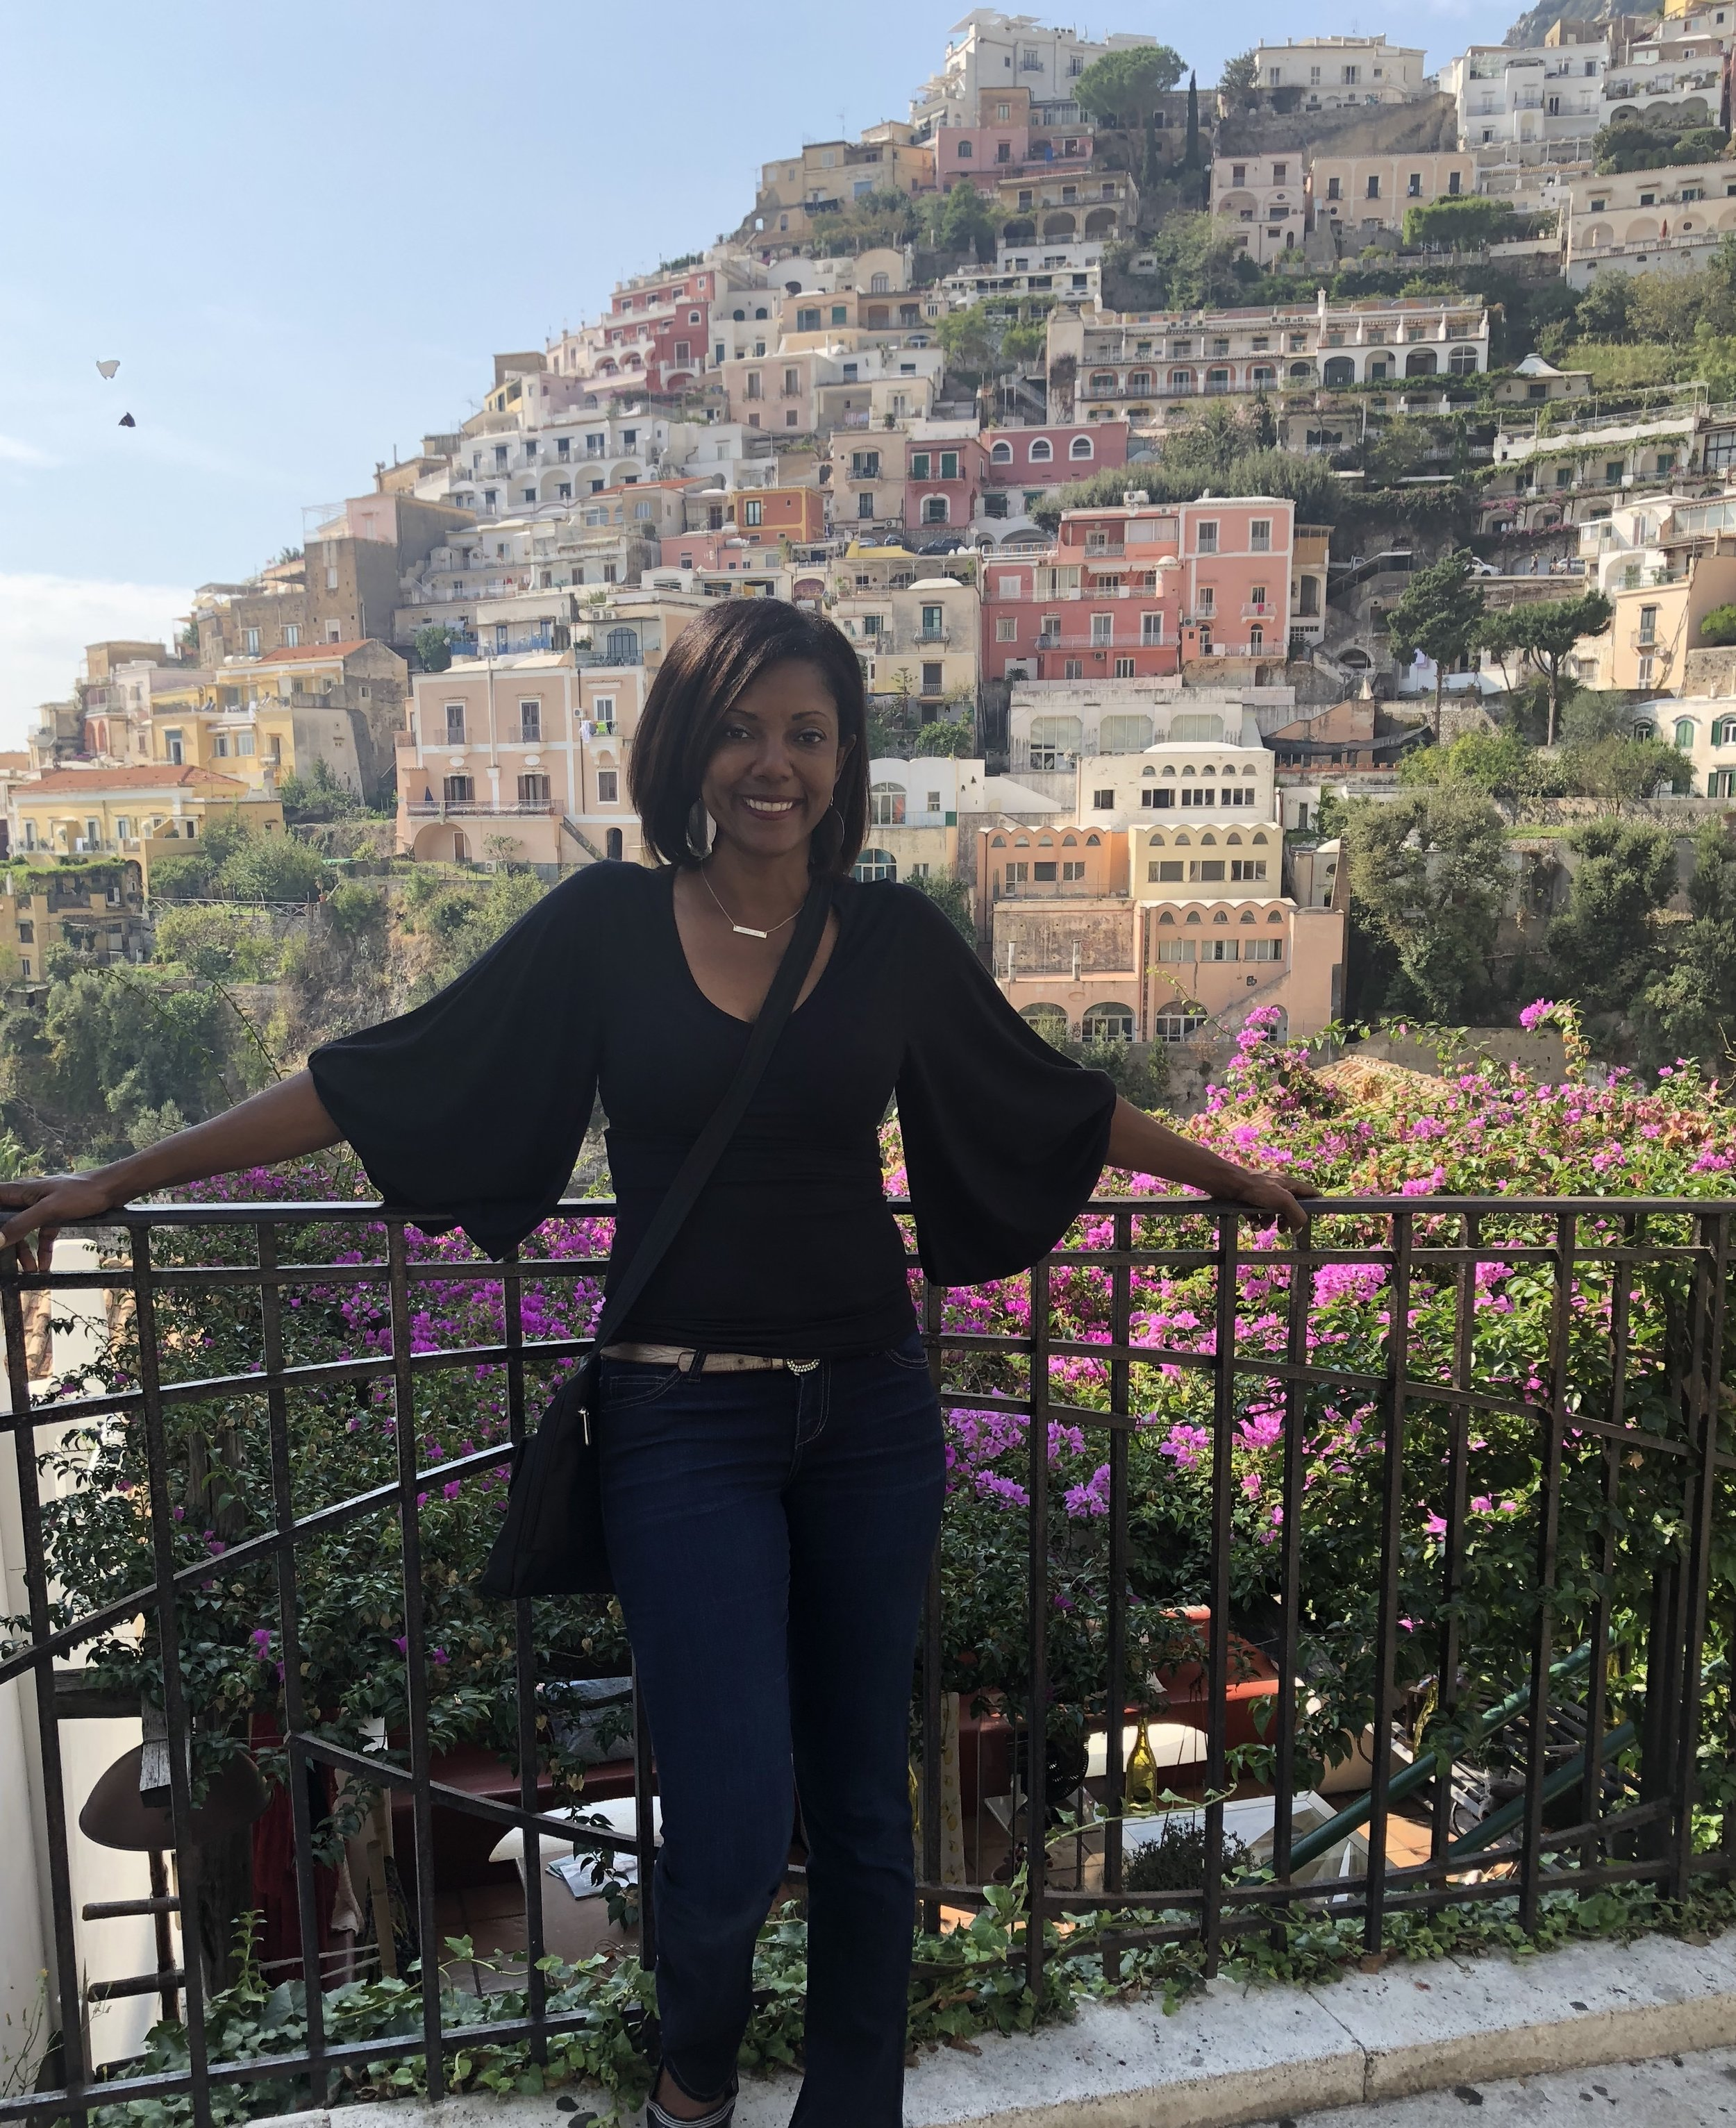 Quick visit to Positano (picturesque town considered the jewel of the coast)